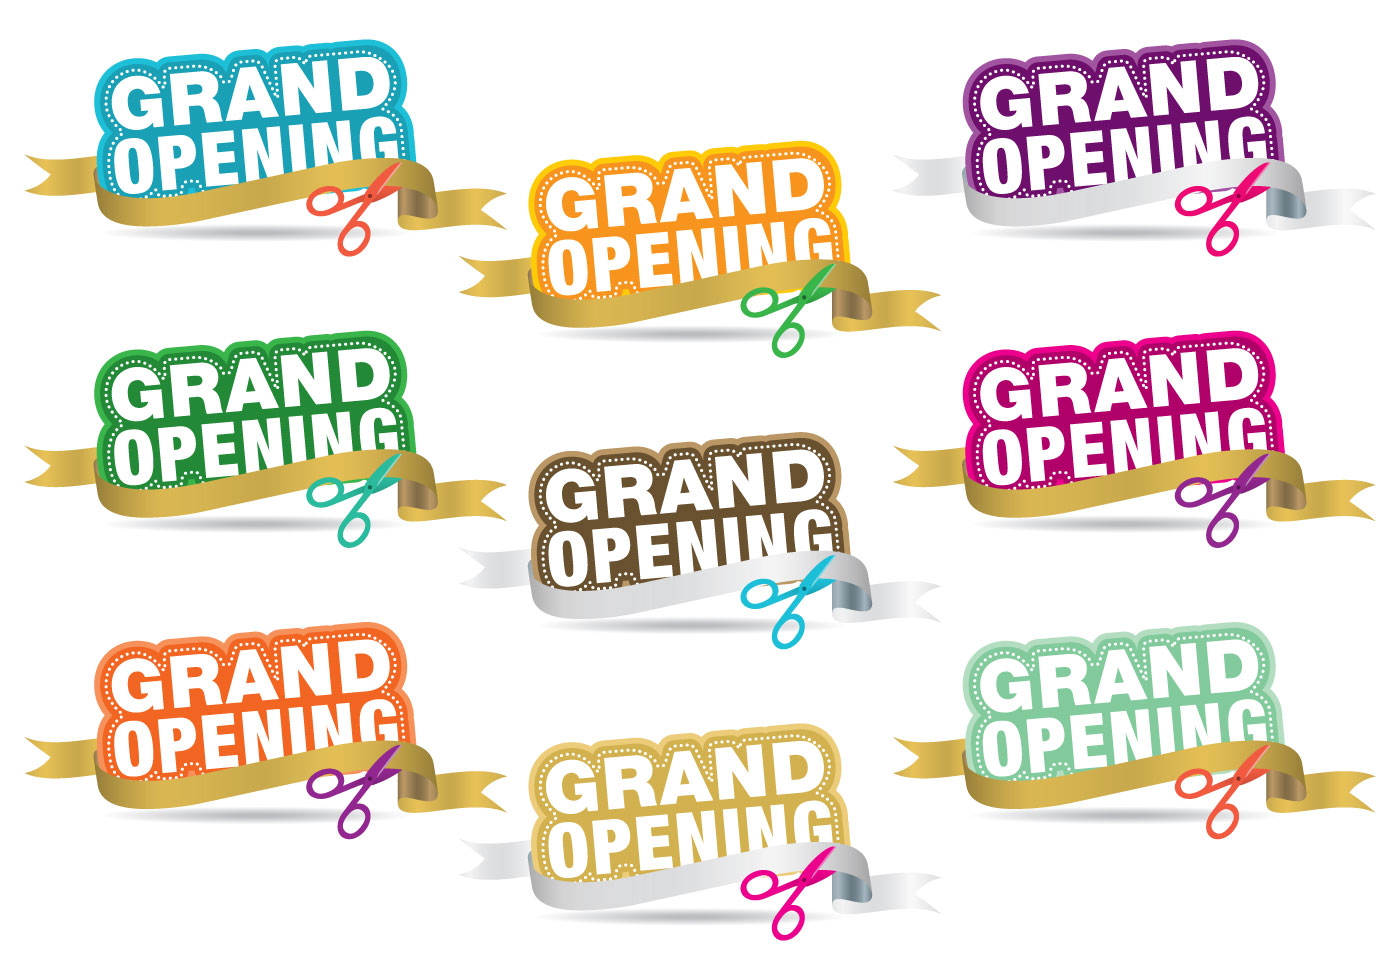 Grand Opening Titles Download Free Vector Art Stock